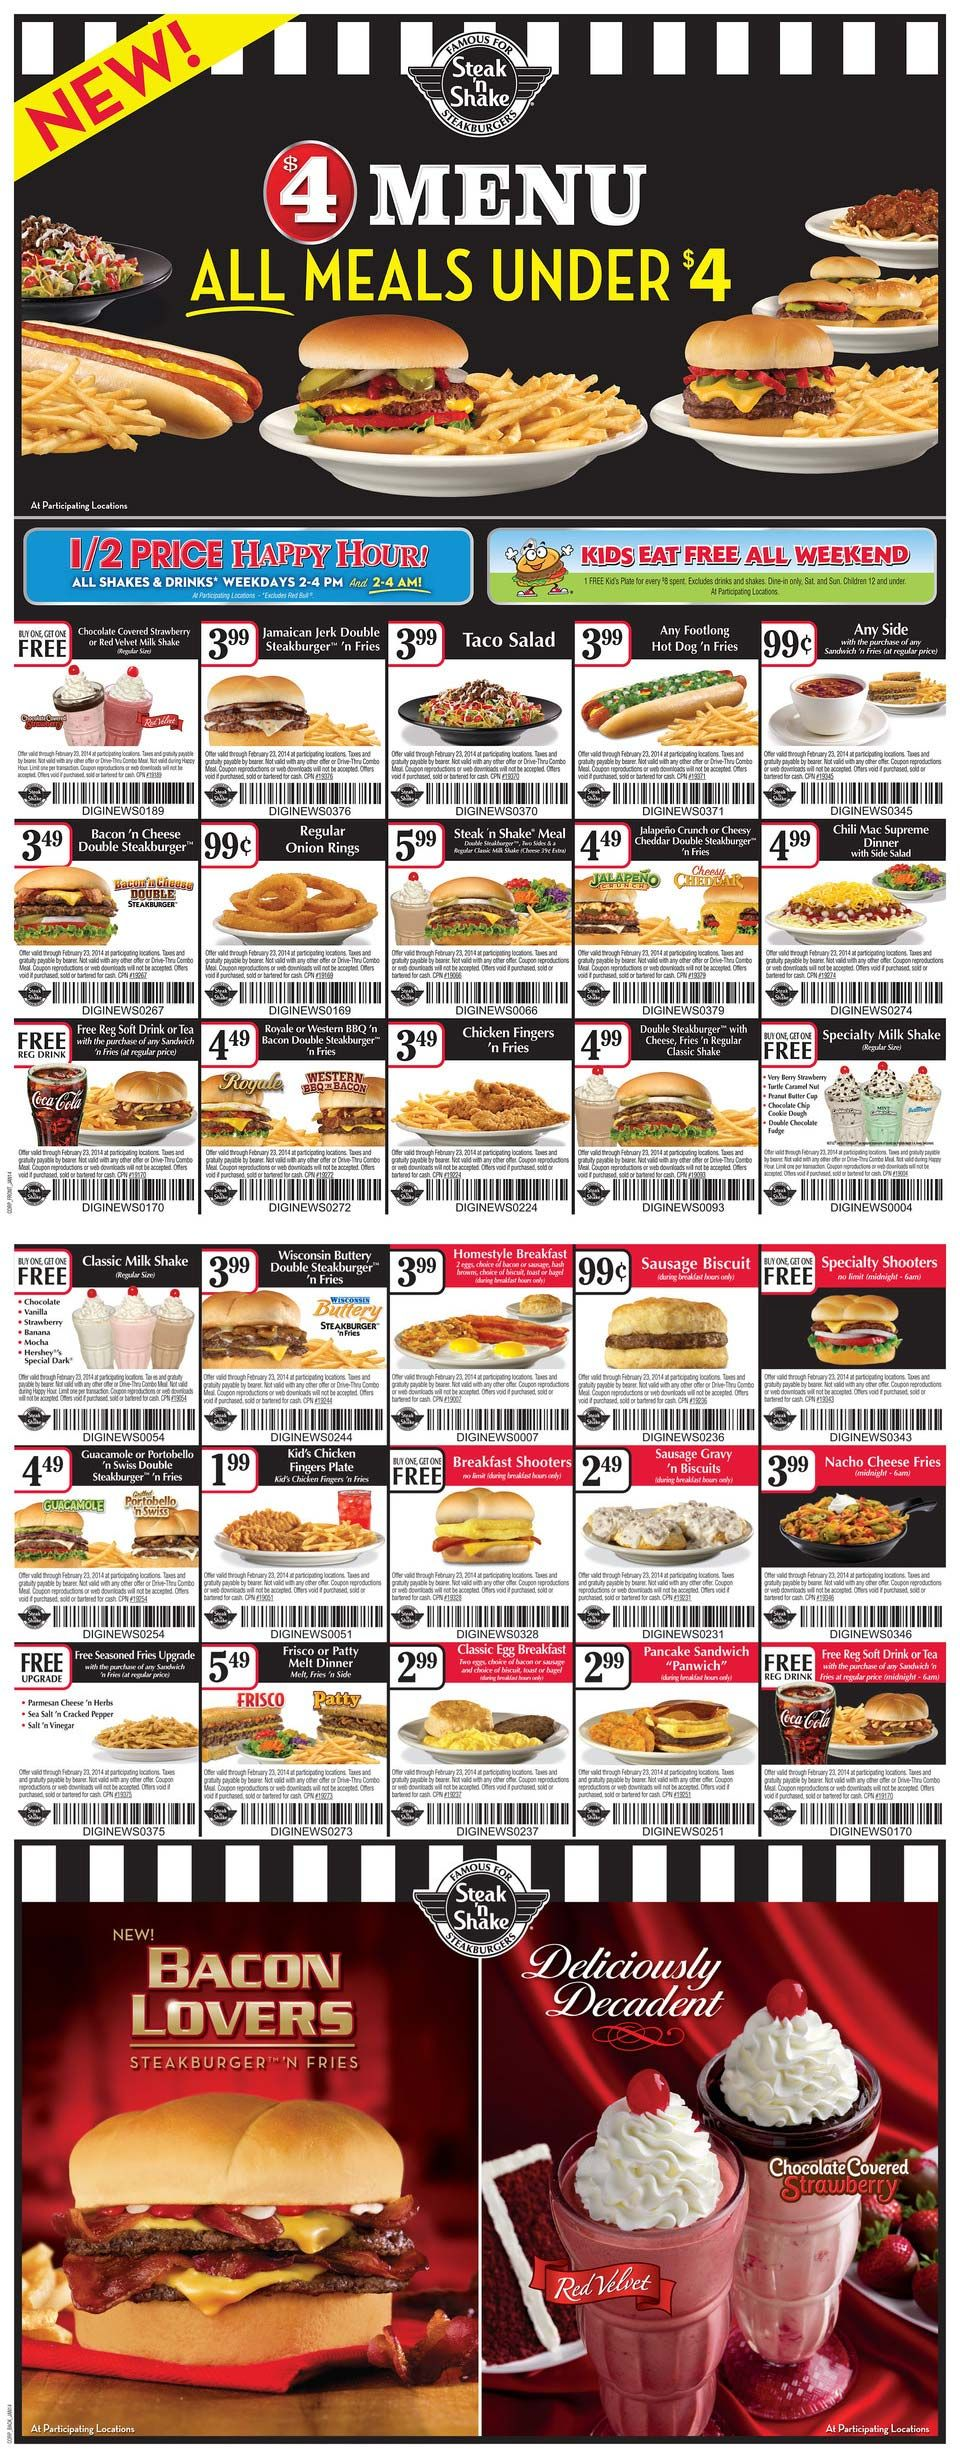 Pinned January 7th 2 For 1 Burgers And More At Steak N Shake Restaurants Coupon Via Th Steak N Shake Coupons Tasty Steak Recipe Steak And Shake Chili Recipe